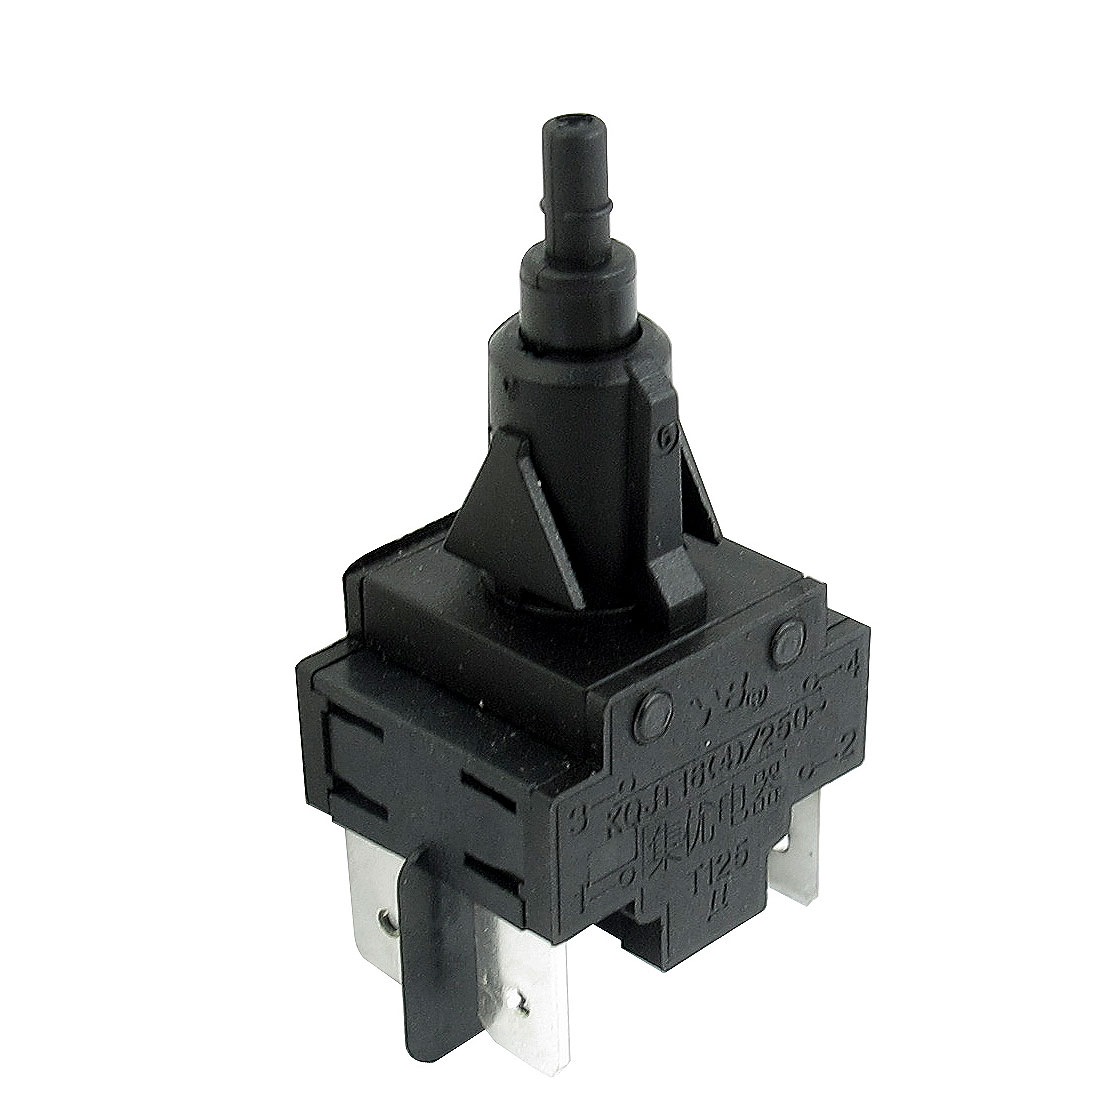 Replacement AC 250V 4A 4 Pin DPST Momentary Power Switch for Washer Washing